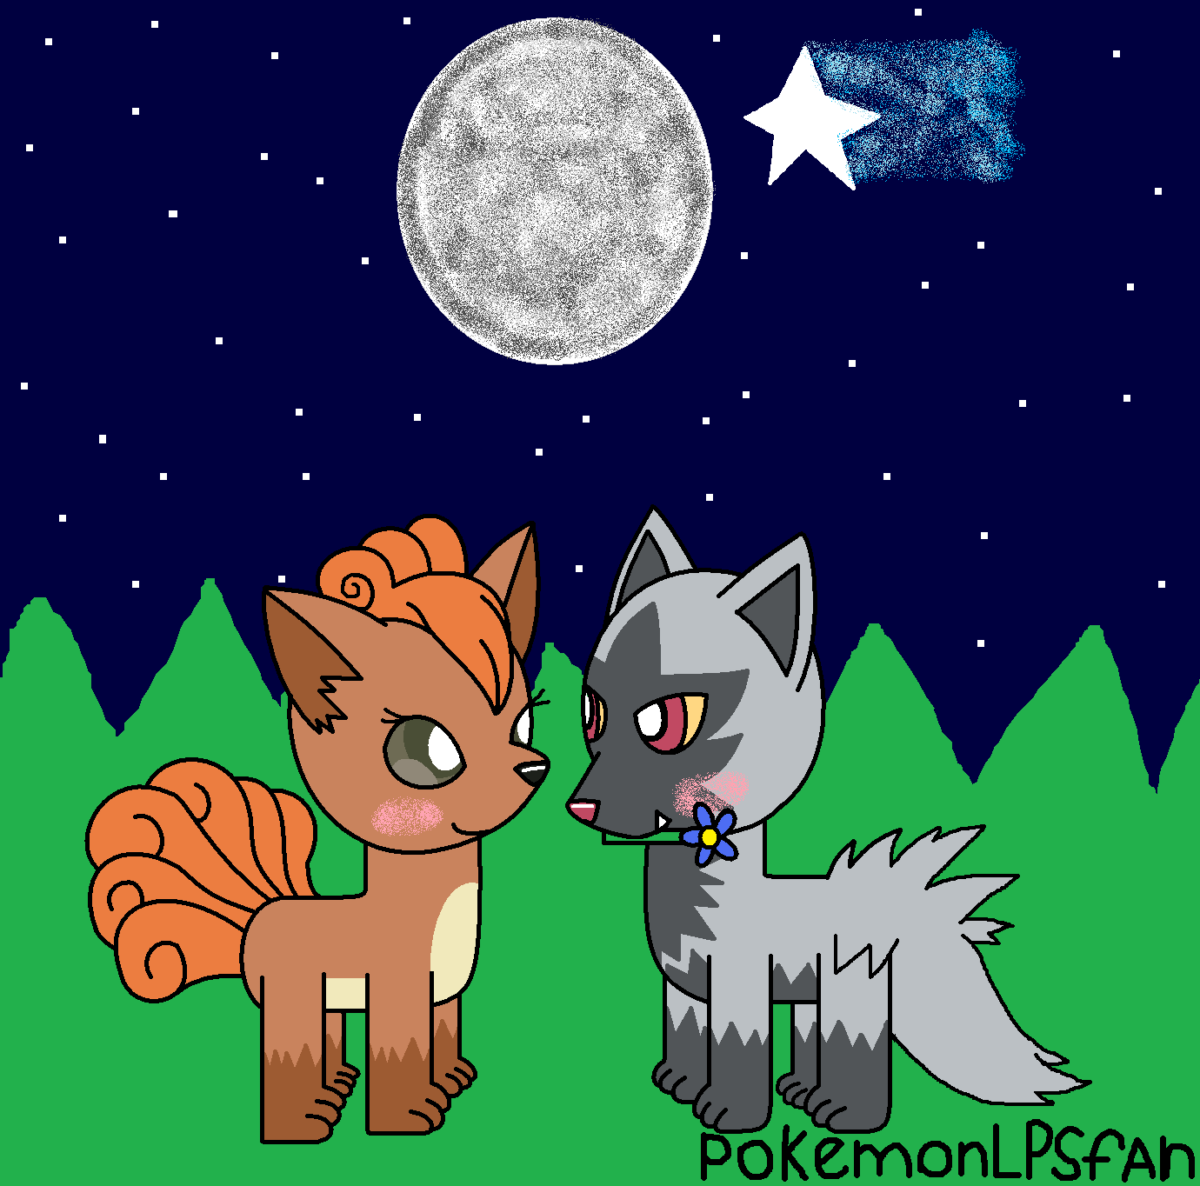 vulpix and poochyena in love by pokemonlpsfan on DeviantArt